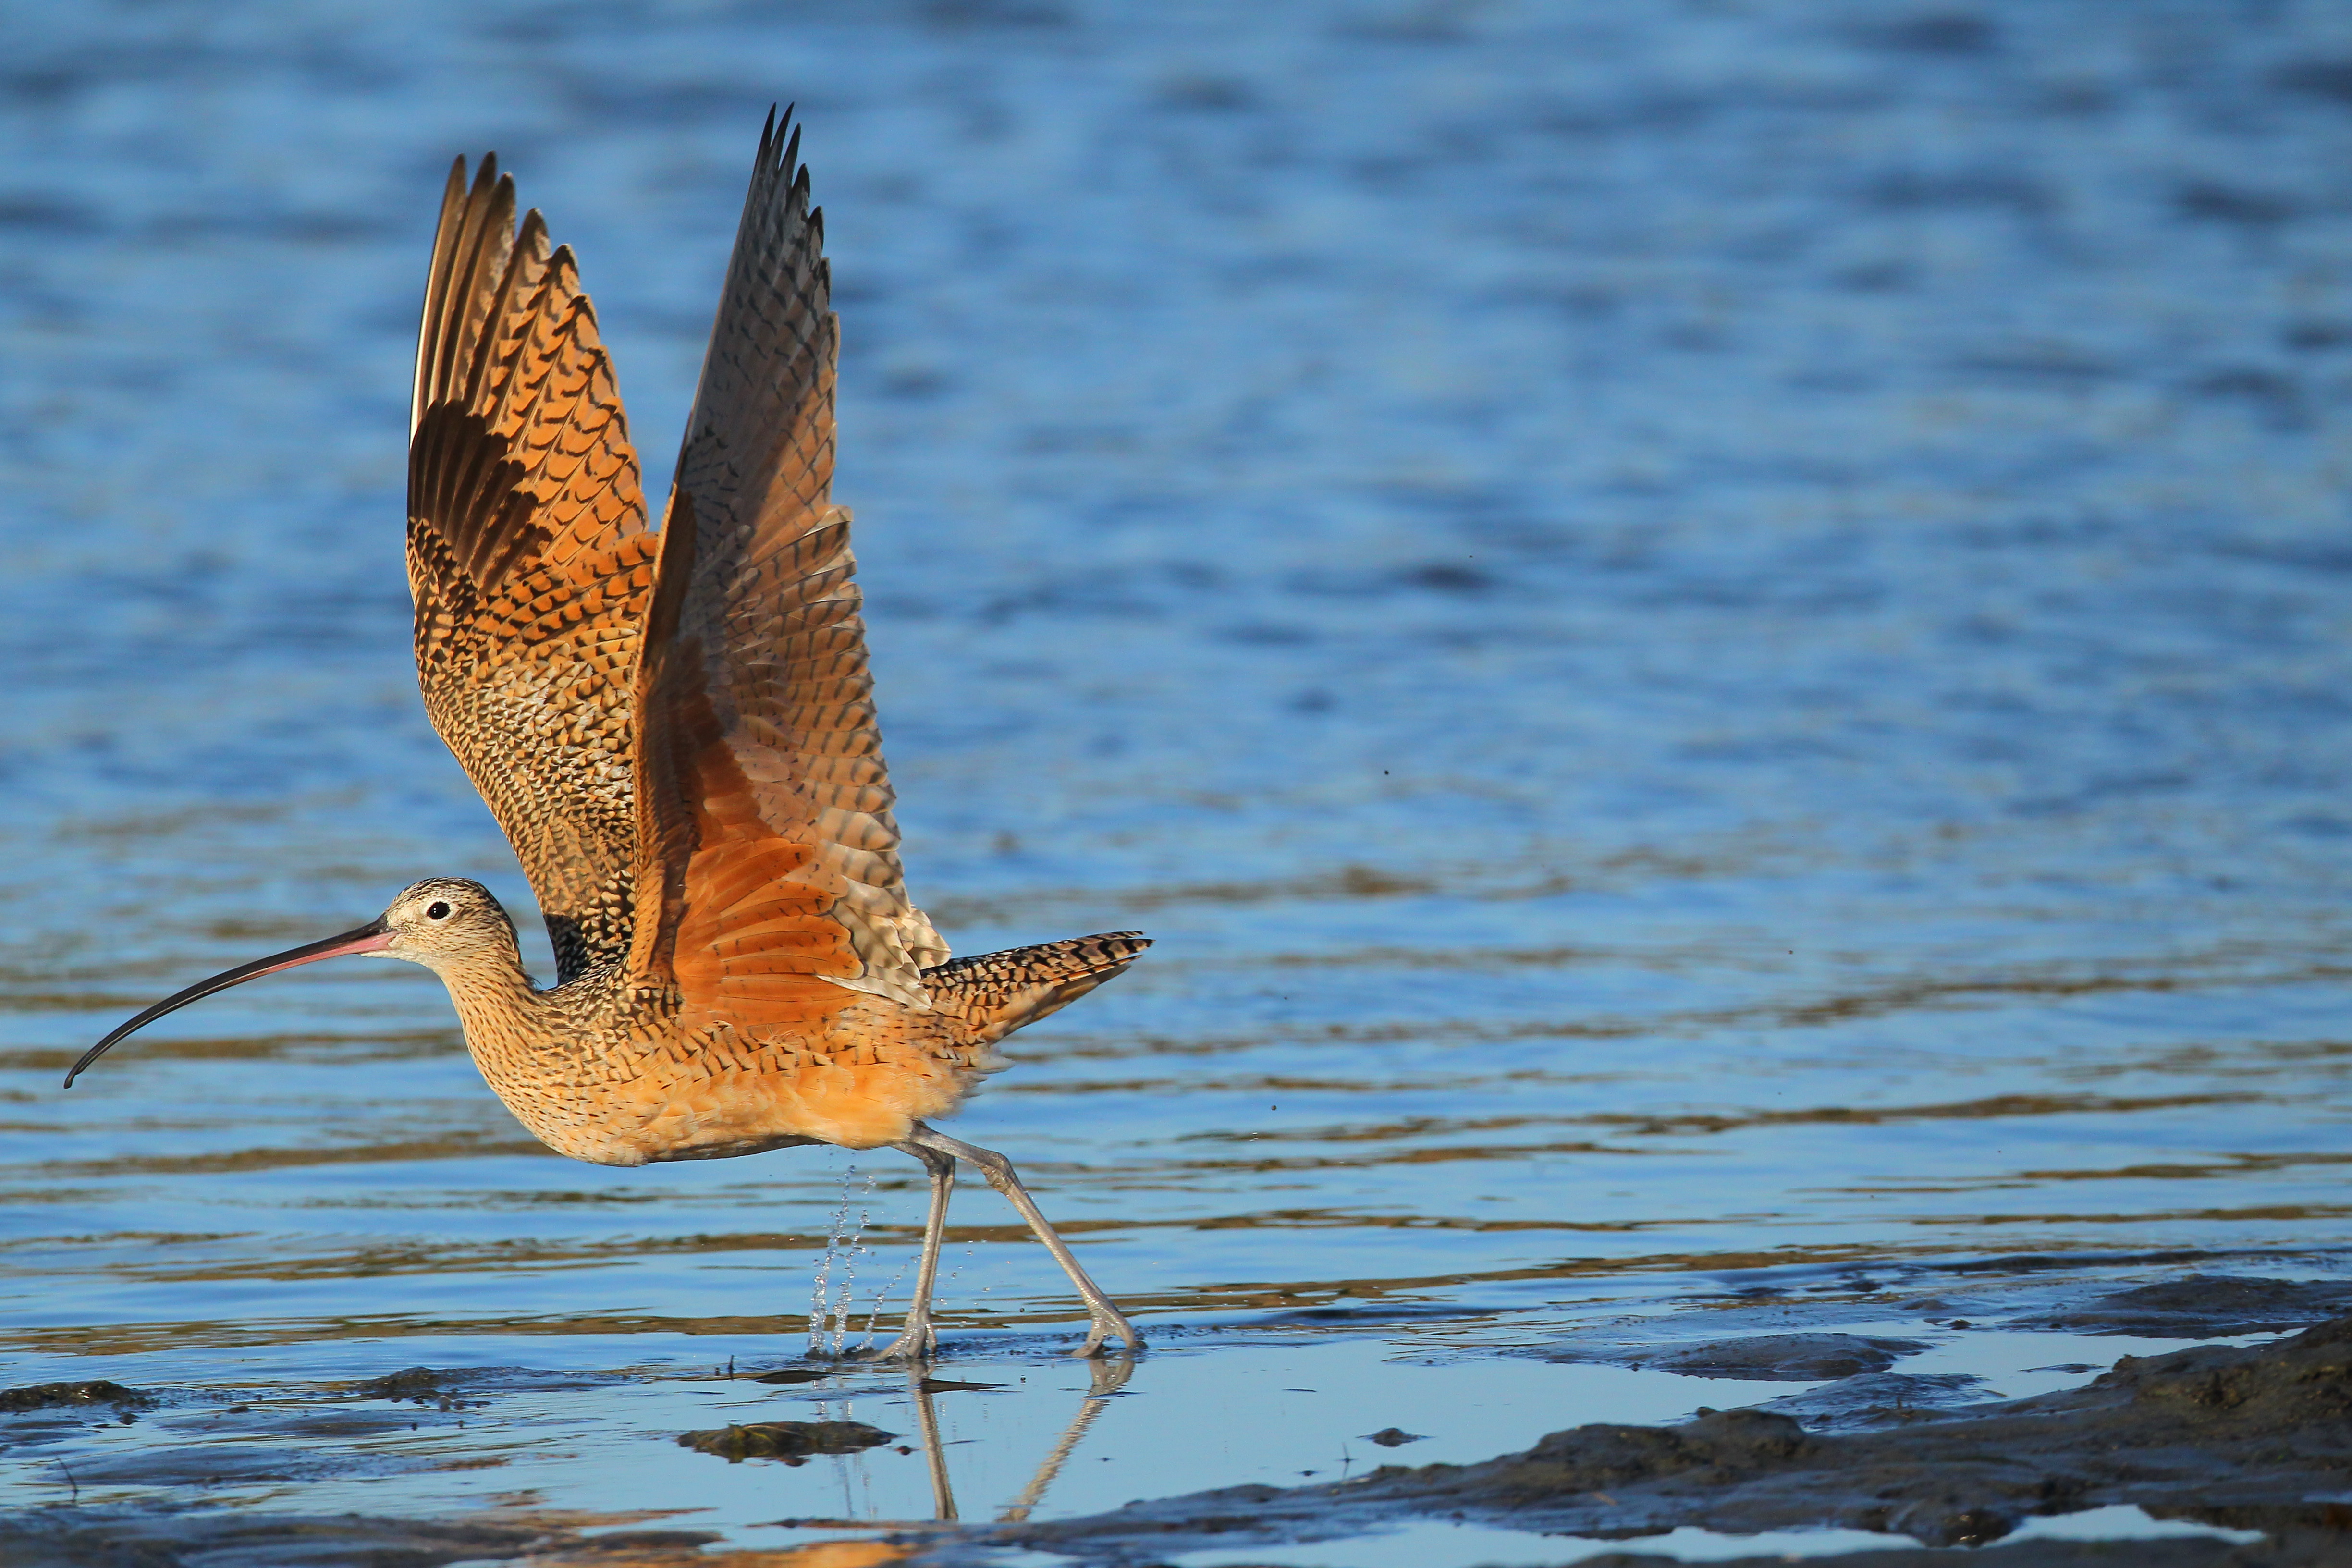 long-billed_curlew_AlexHouston.jpg